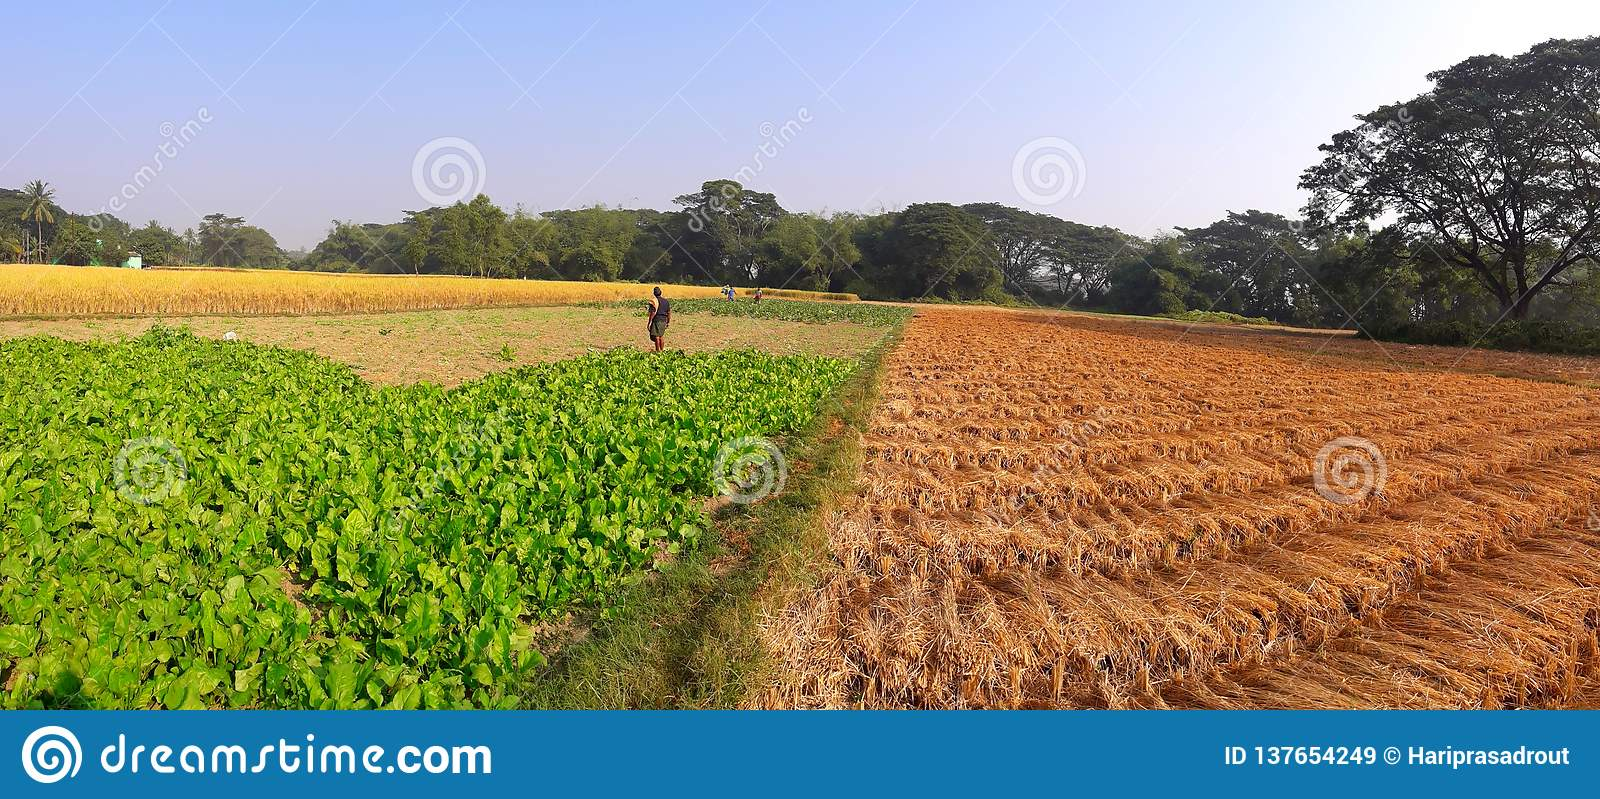 Harvesting time photo of rice paddy and vegetable.